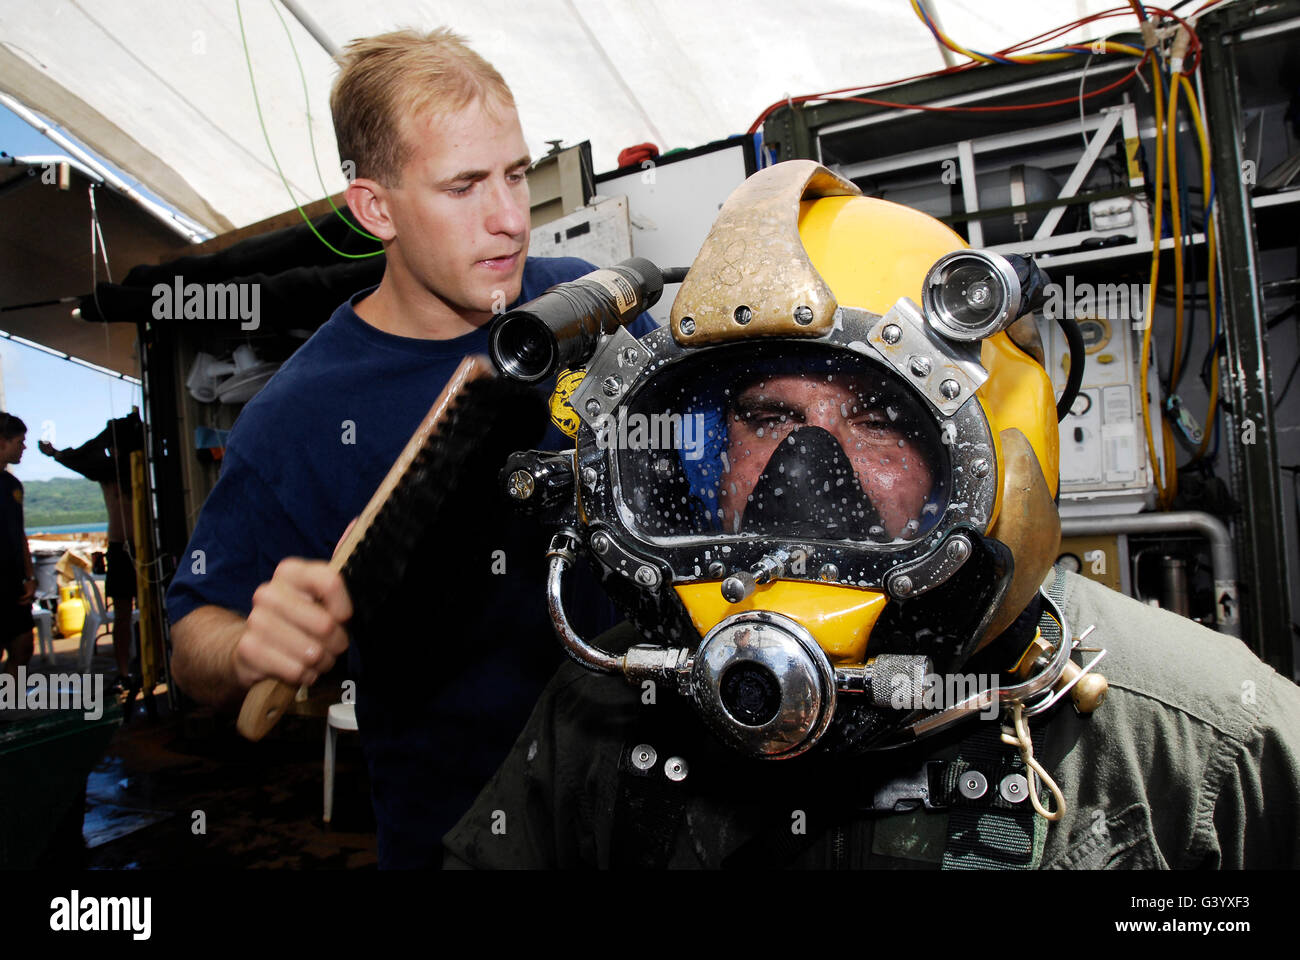 U.S. Navy Diver performs a leak check on a Navy Diver. - Stock Image